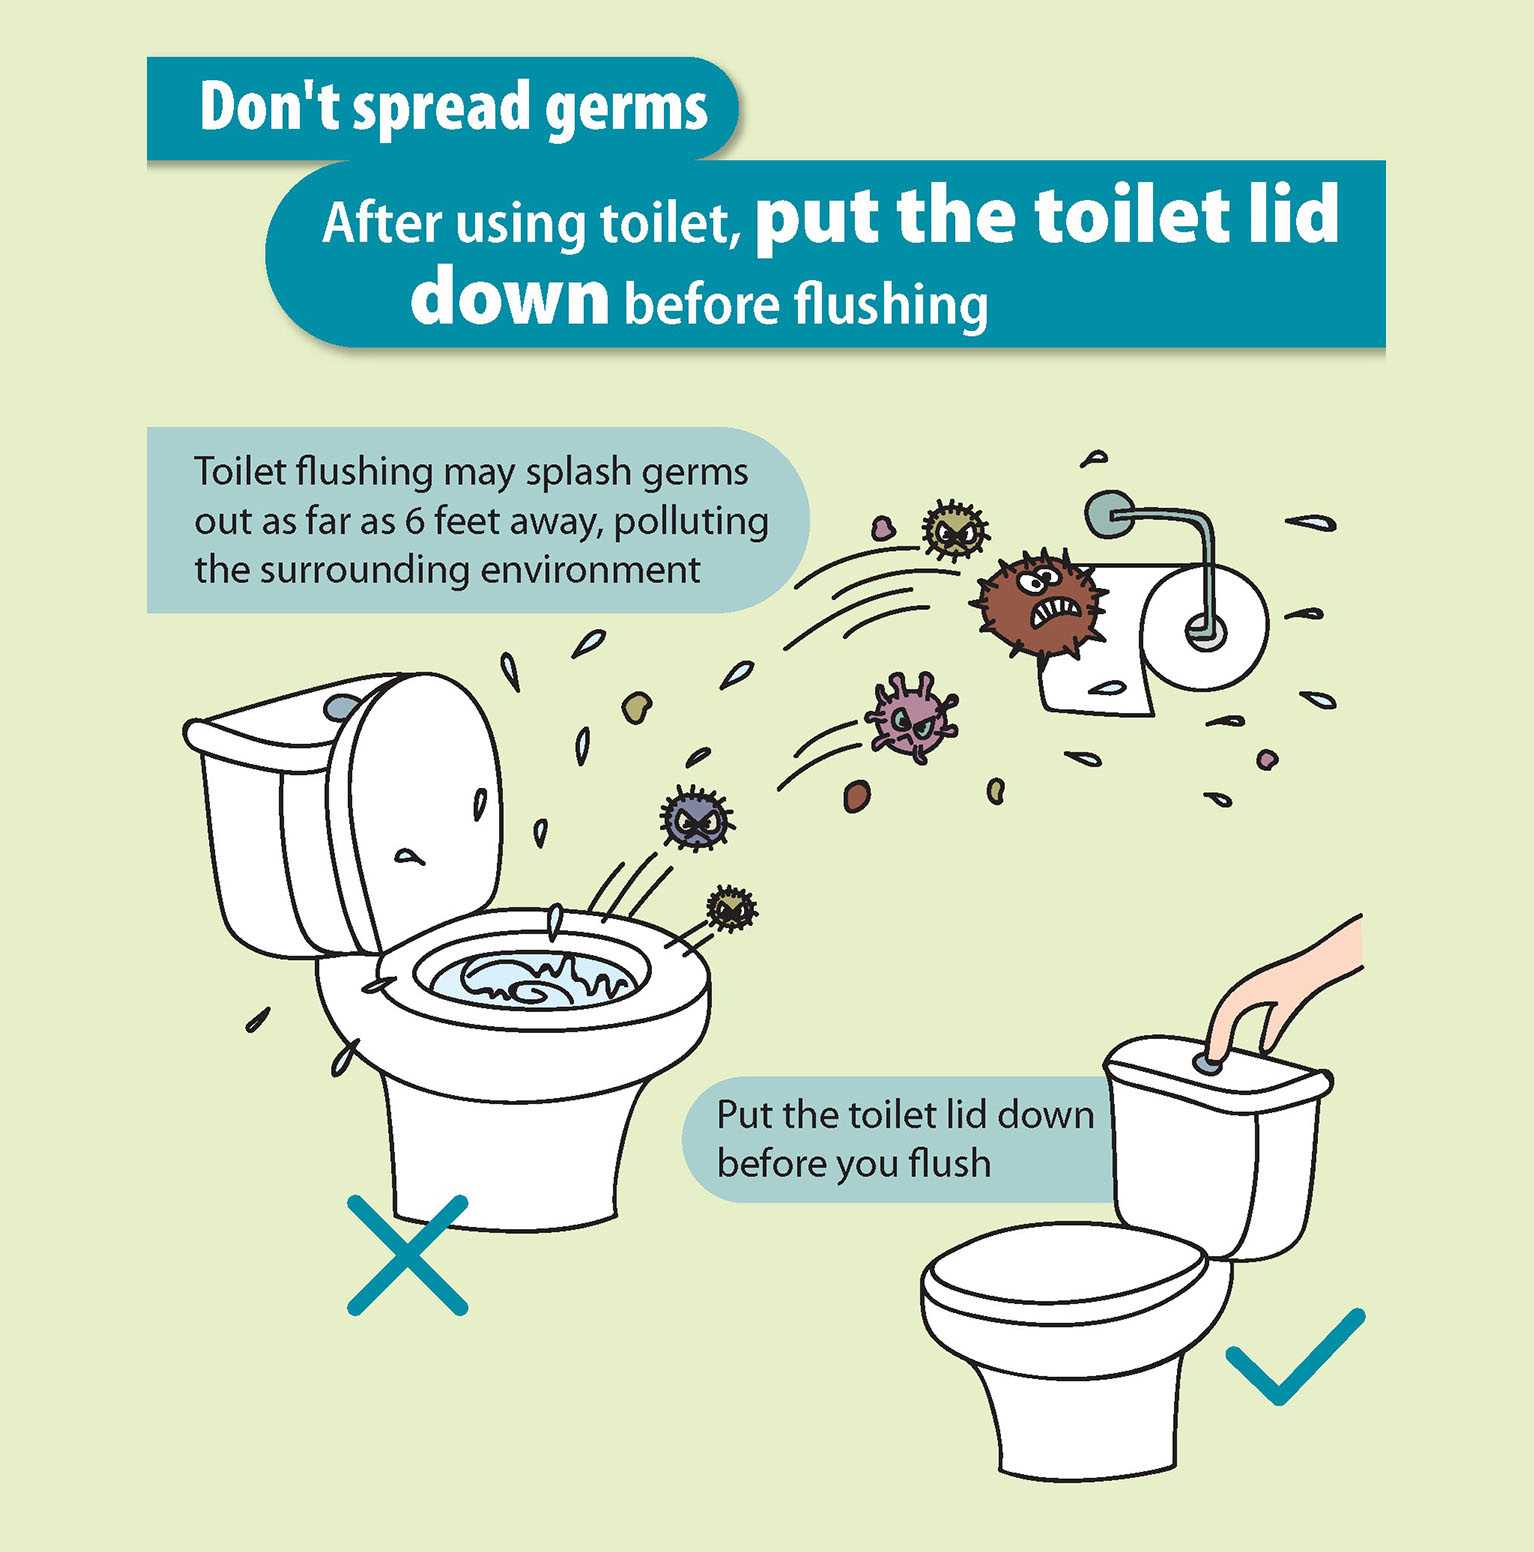 Don't spread germs, After using toilet, put the toilet lid down before flushing